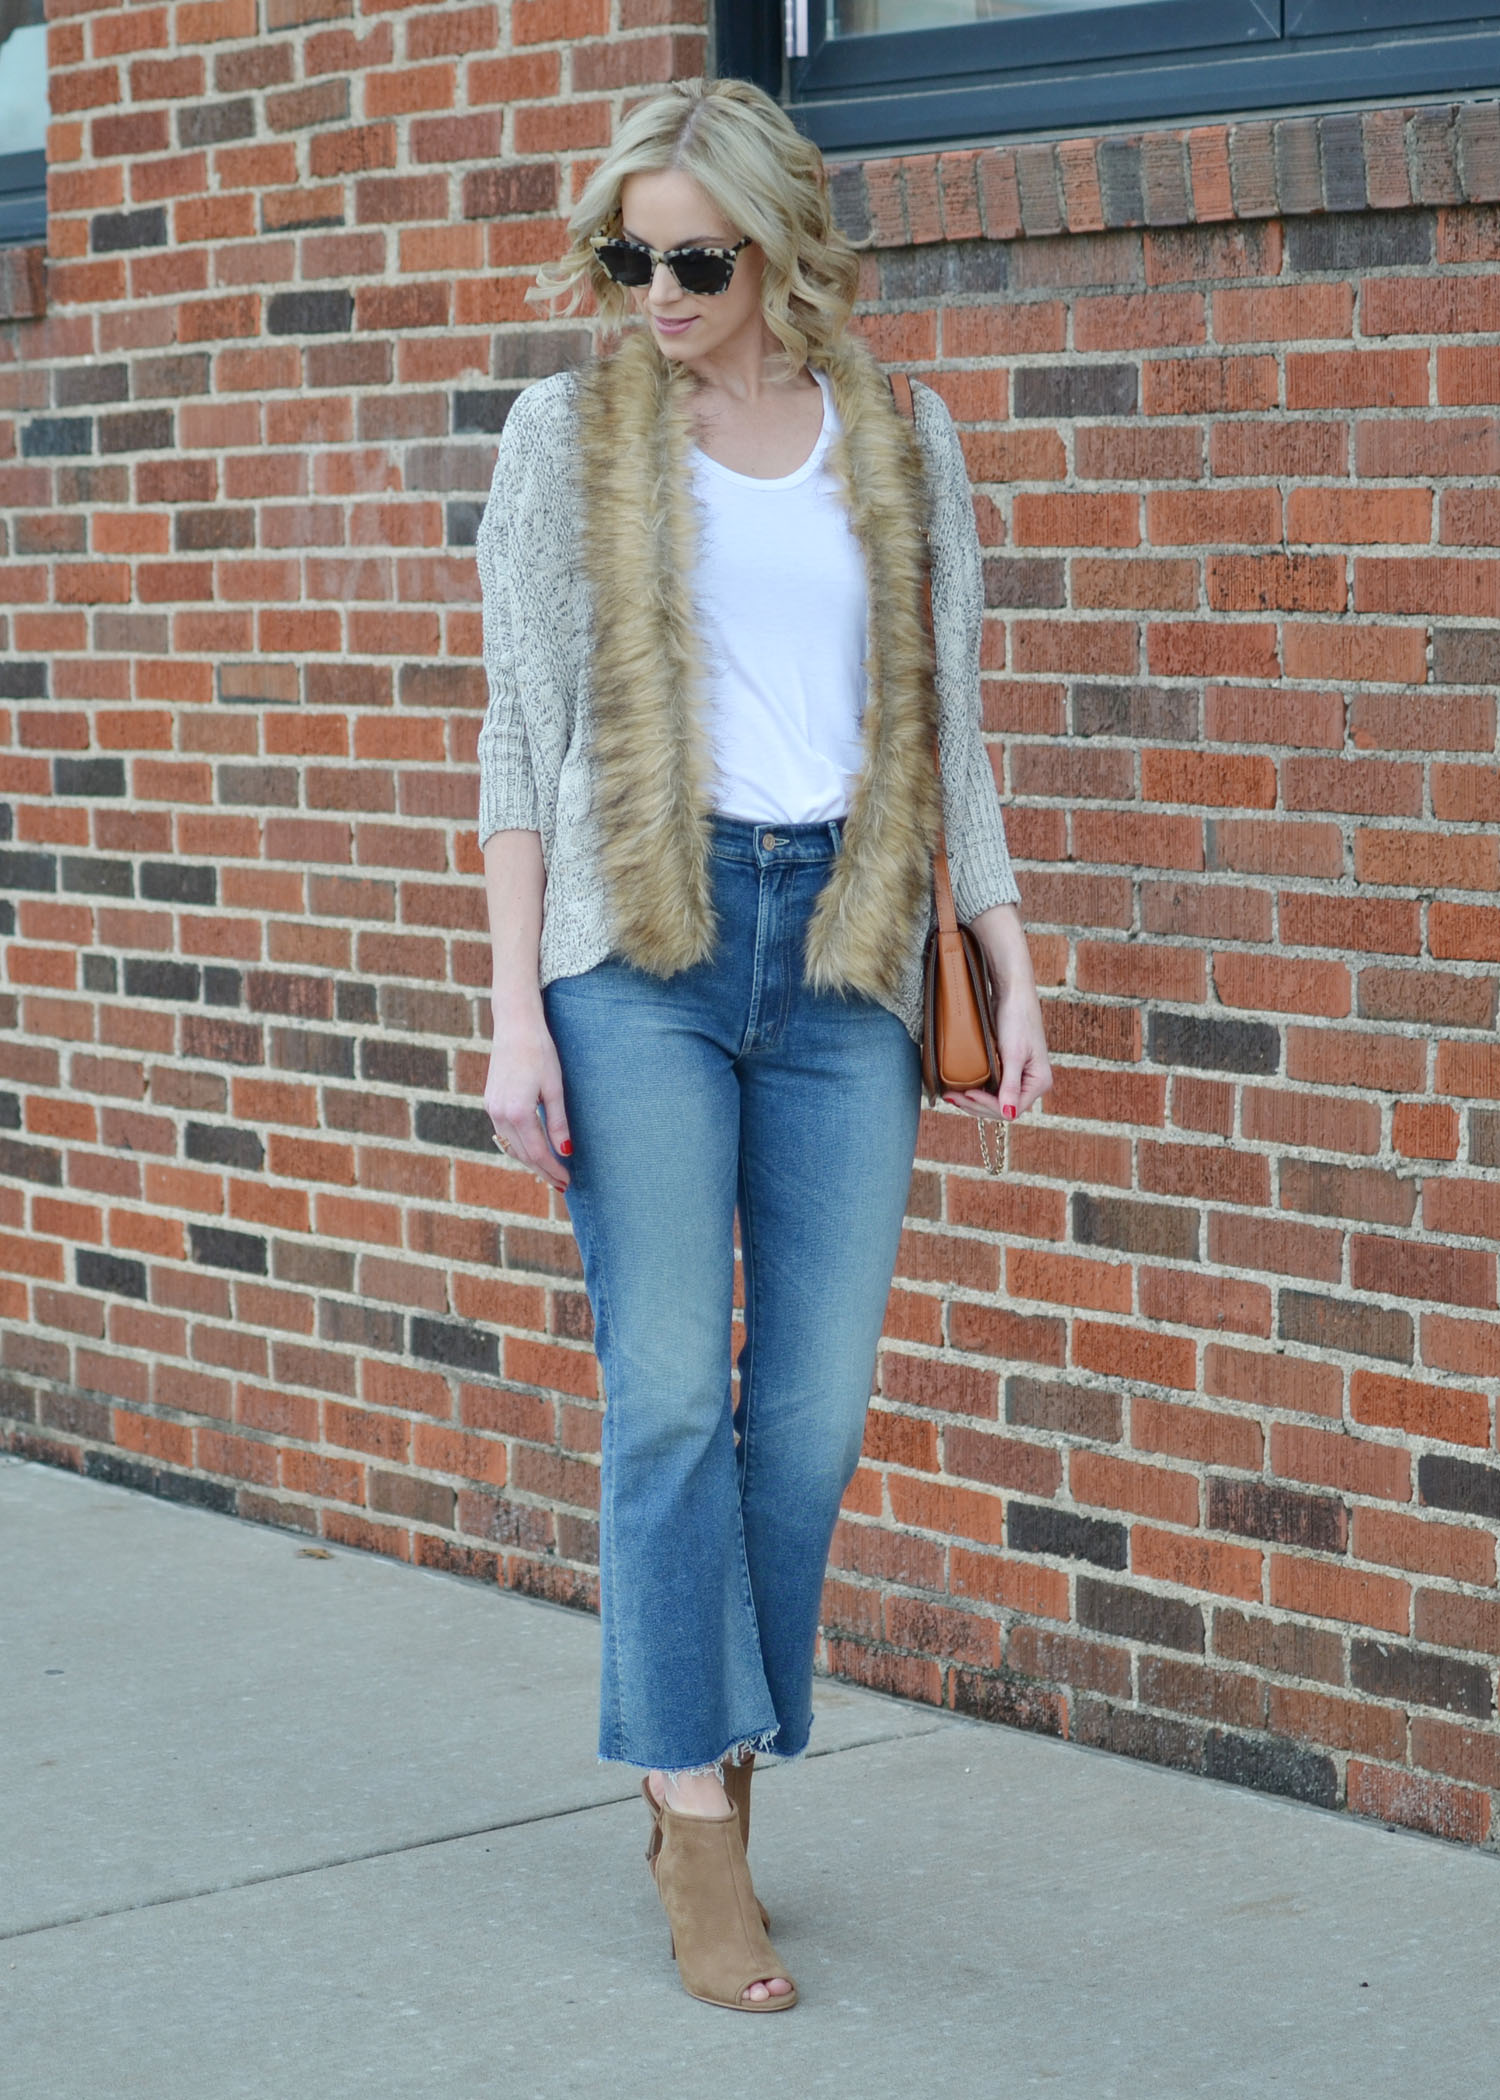 Sweater with the Fur - Straight A Style